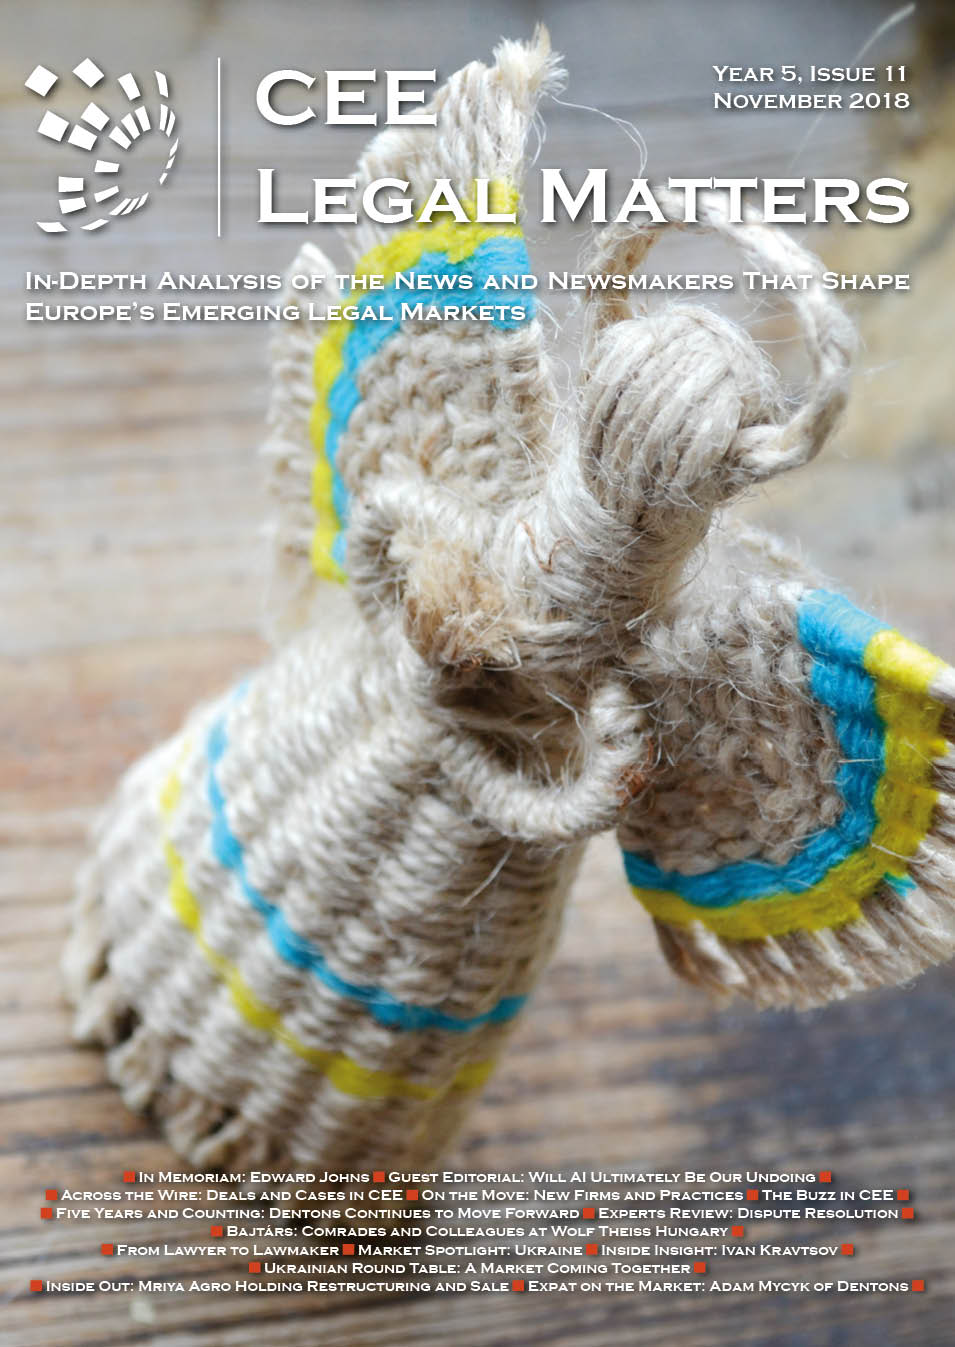 CEE Legal Matters: Issue 5.11.